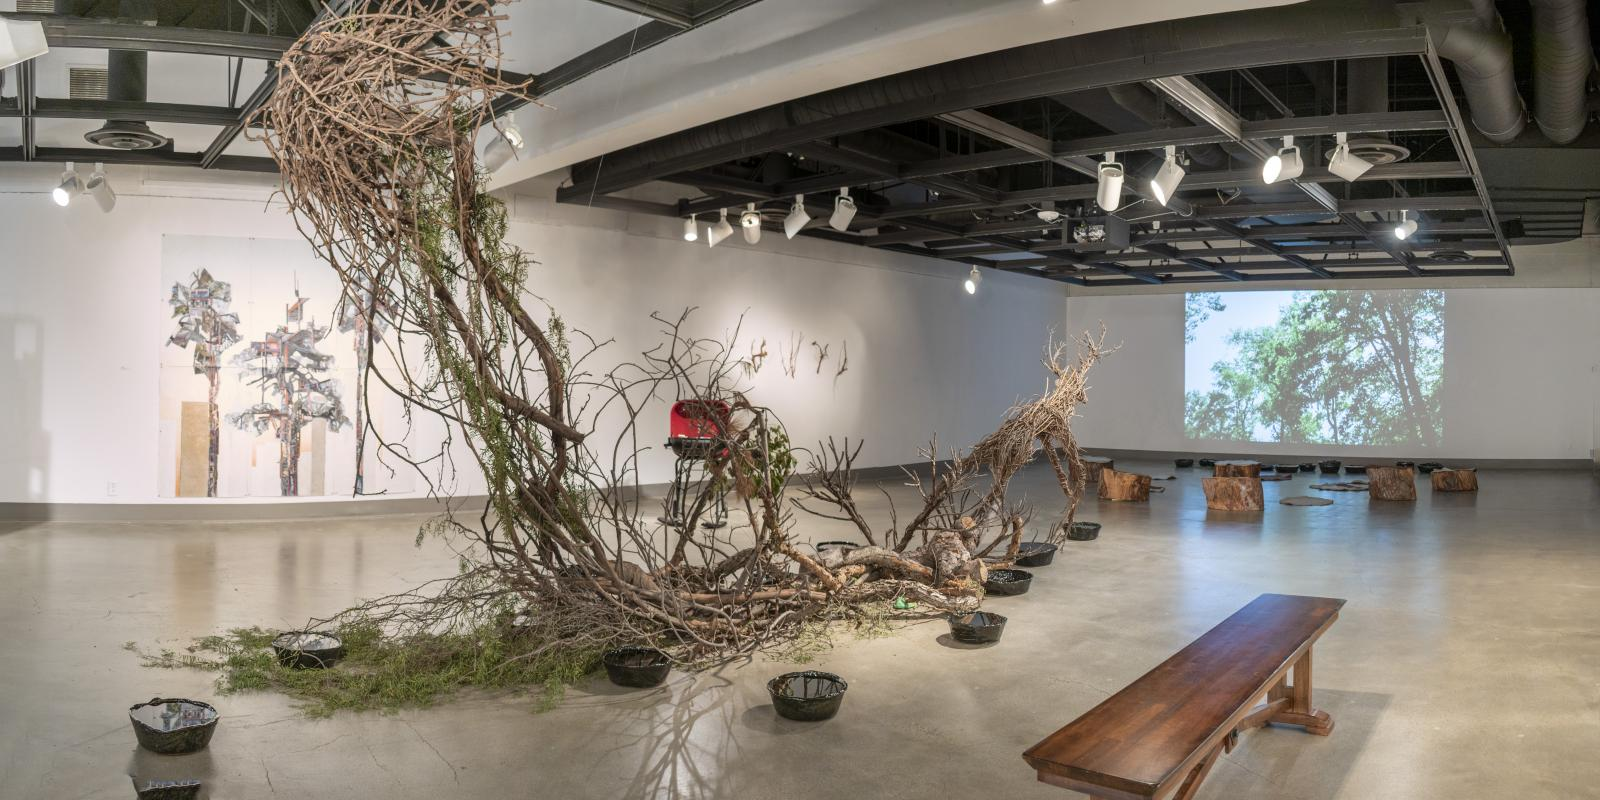 "Installation View, Back of gallery, ""St. Broxville Wood: Into the Thicket"", Exhibition, Artists: Jennifer Gunlock, Hilary Norcliffe, and Katie Stubblefield. Jan. 21, 2020 to Dec.13, 2020 (extended indefinitely after Dec. 13, 2020), Curator: Michele Cairella Fillmore, W. Keith & Janet Kellogg Art Gallery, Cal Poly Pomona."